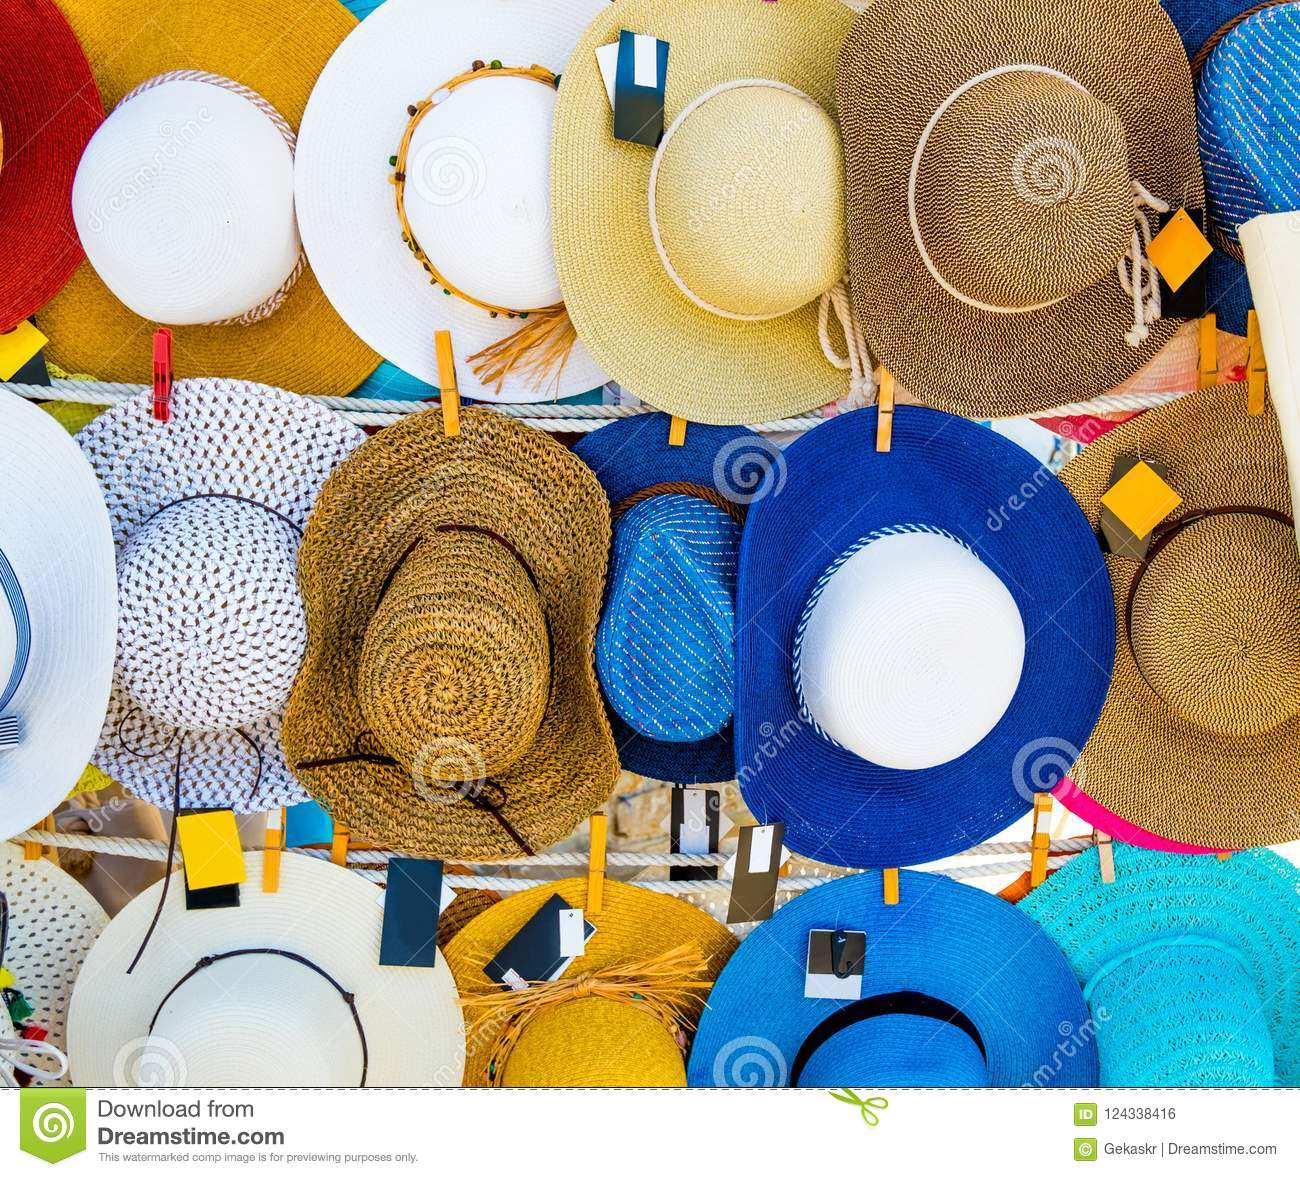 017151b9a0351 Colorful straw hats hanging on the market stall outdoor. Bright summer  woman hats for sale